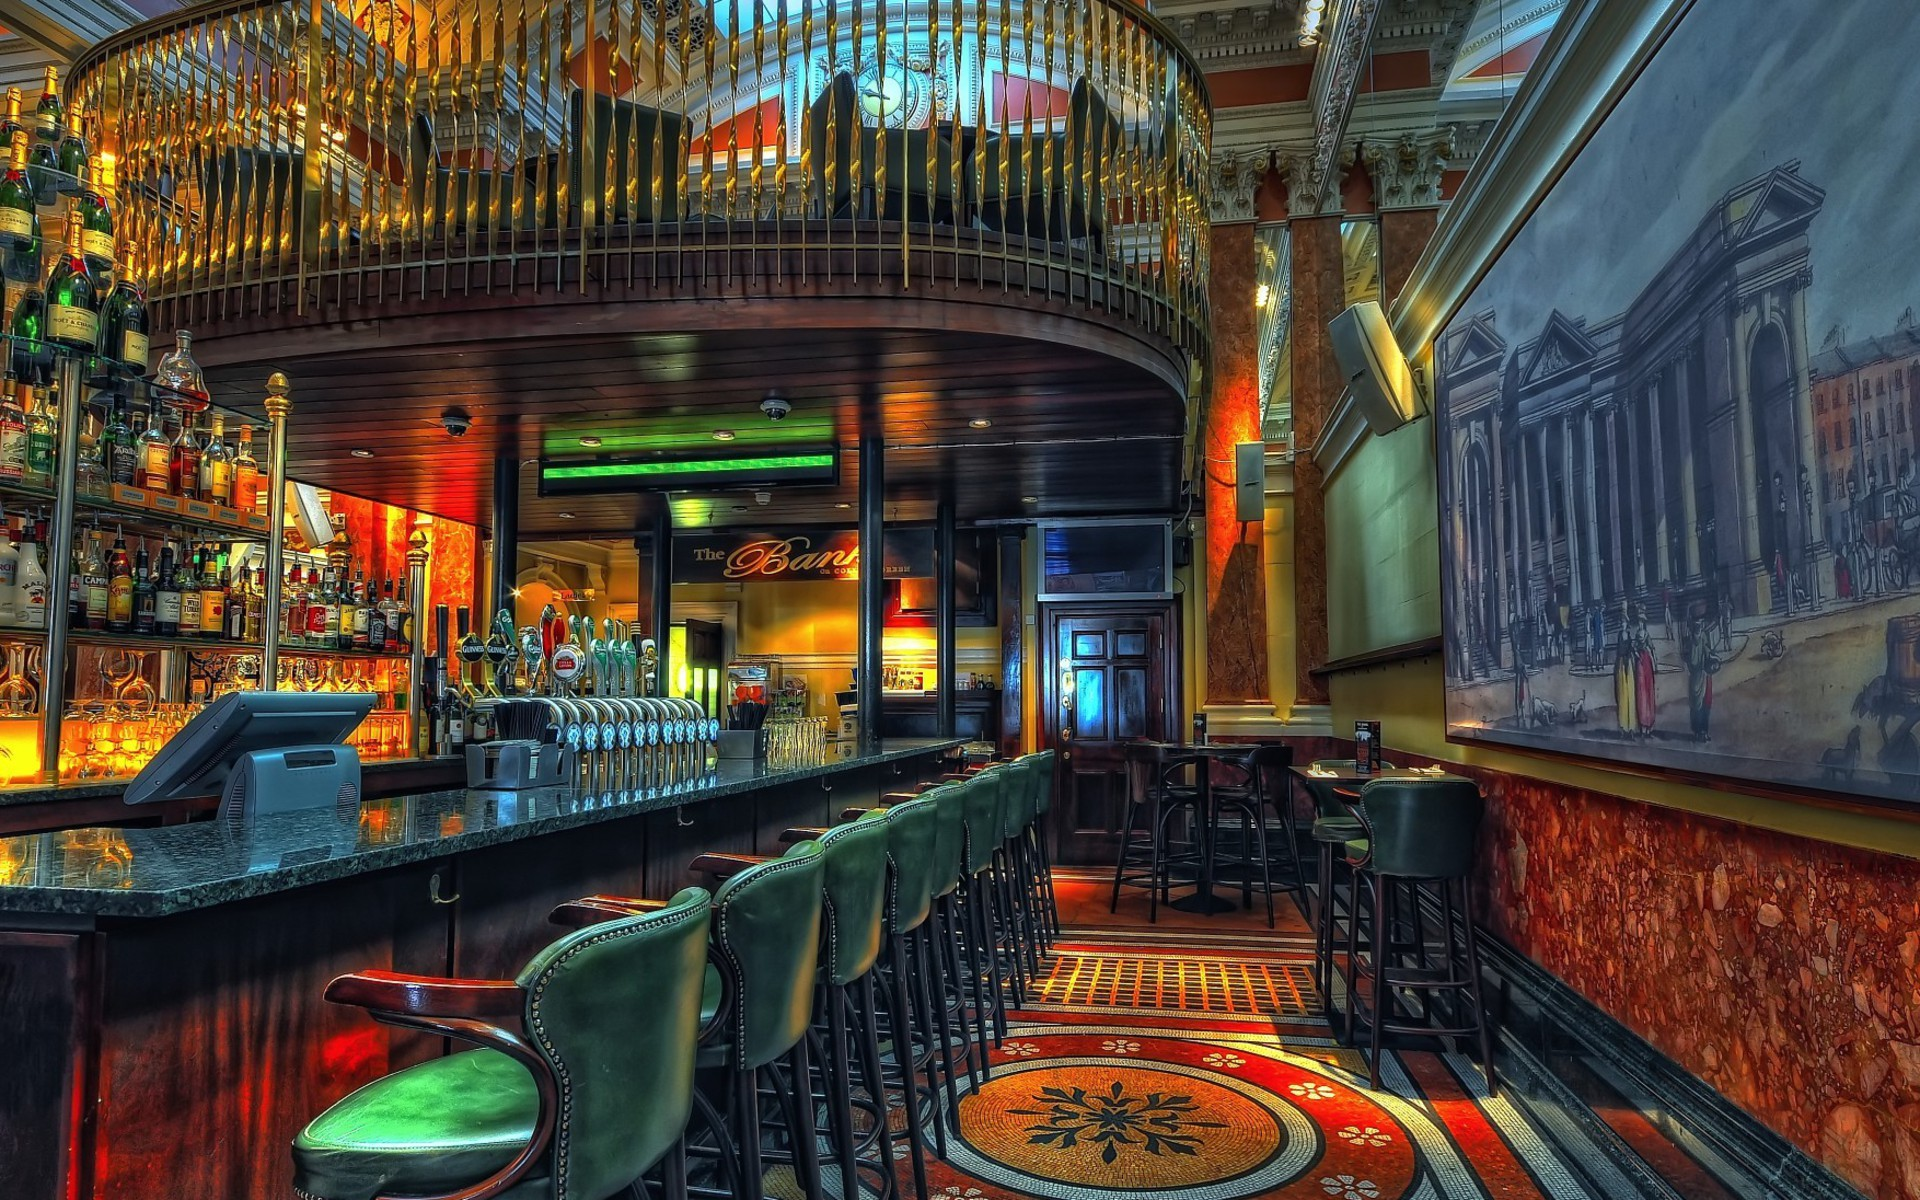 Hdr full hd wallpaper and background image 1920x1200 id 115869 - Picture of bar ...